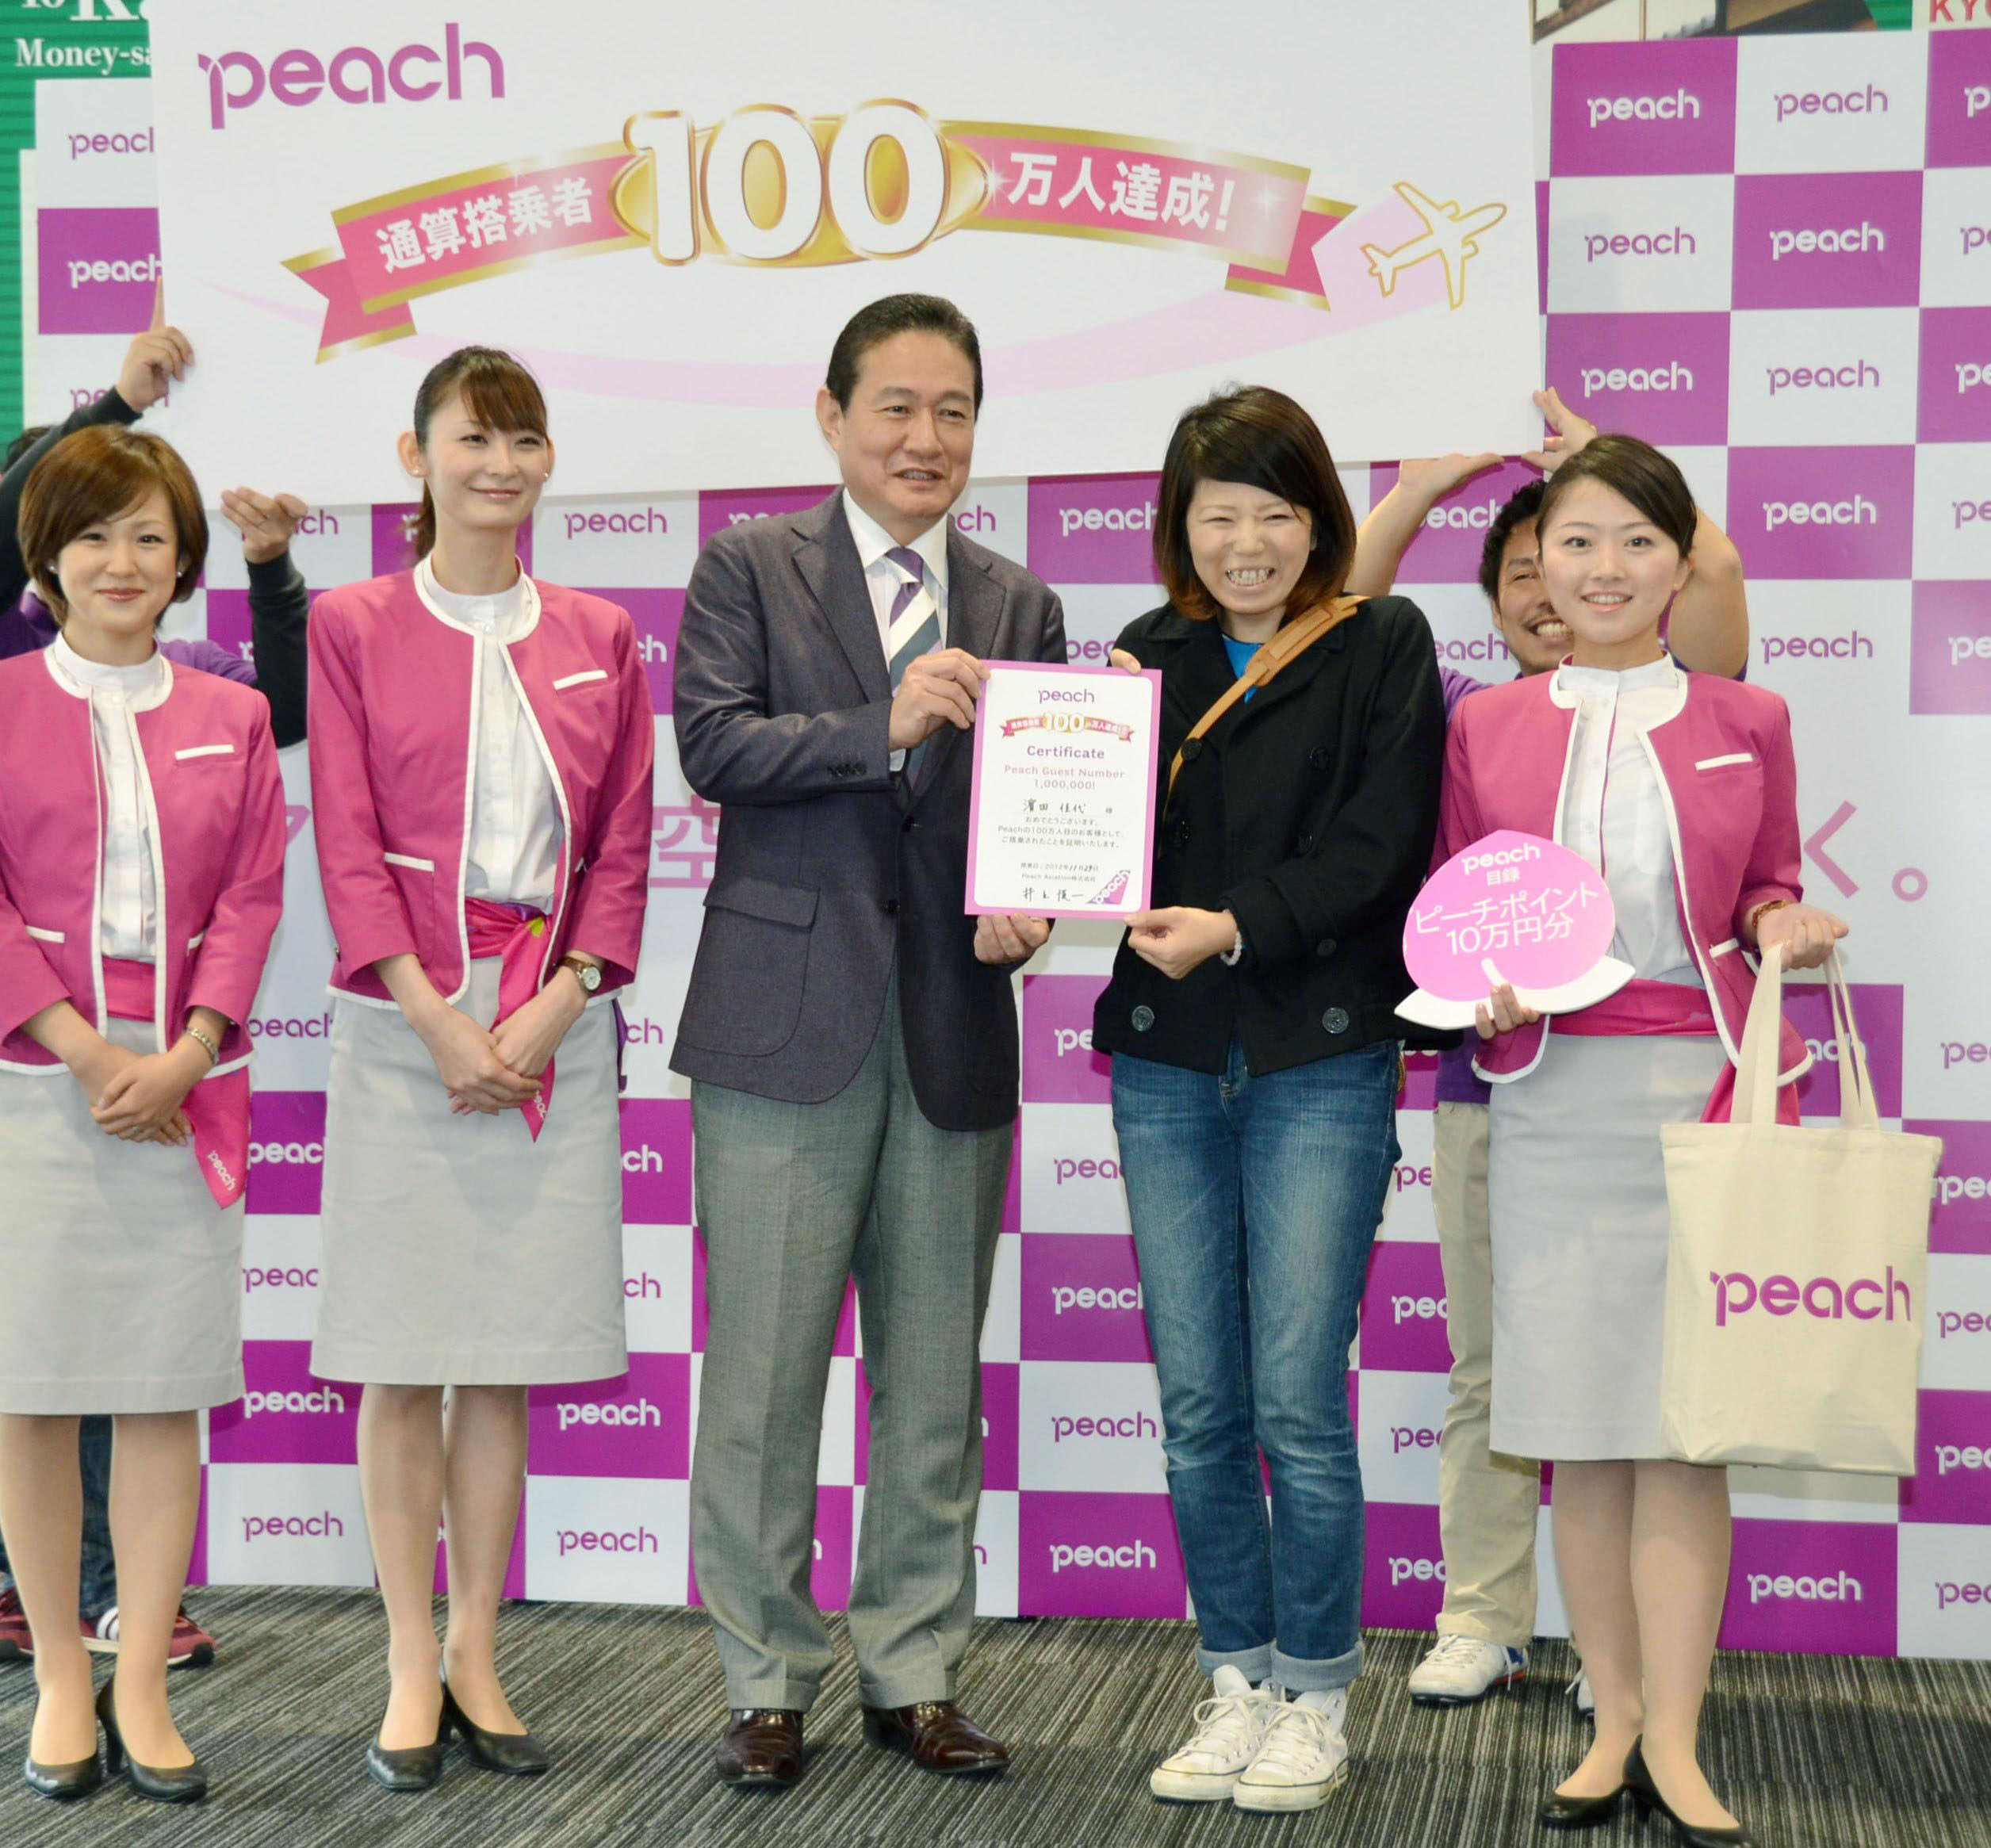 Peach Aviation passes 1 million passenger milestone